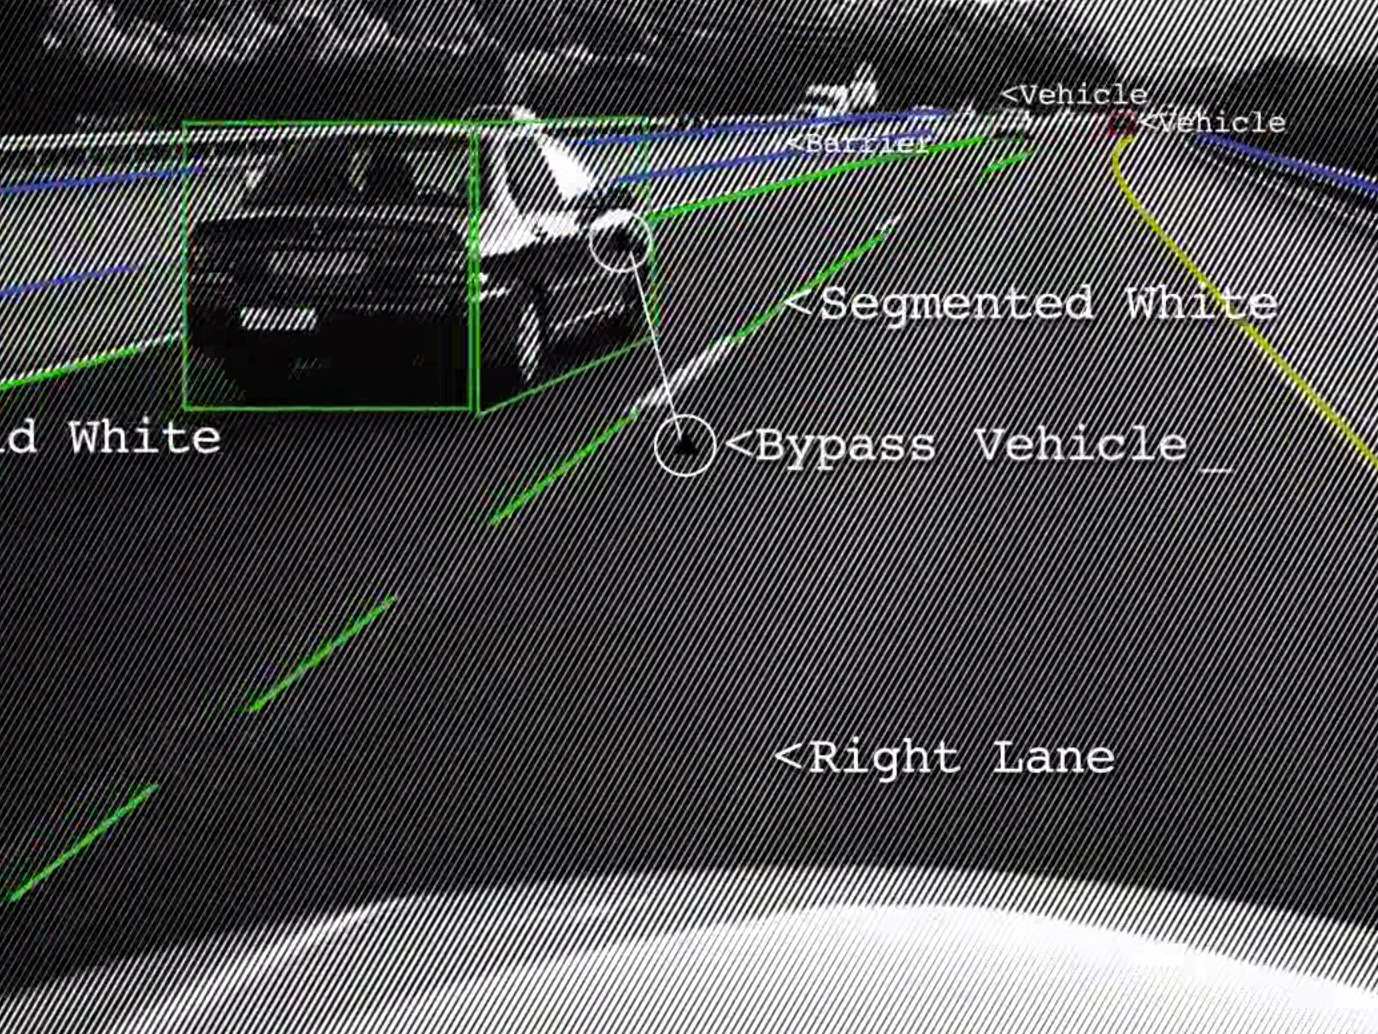 Reinforcement Learning Will Bring Autonomous Cars to the Masses